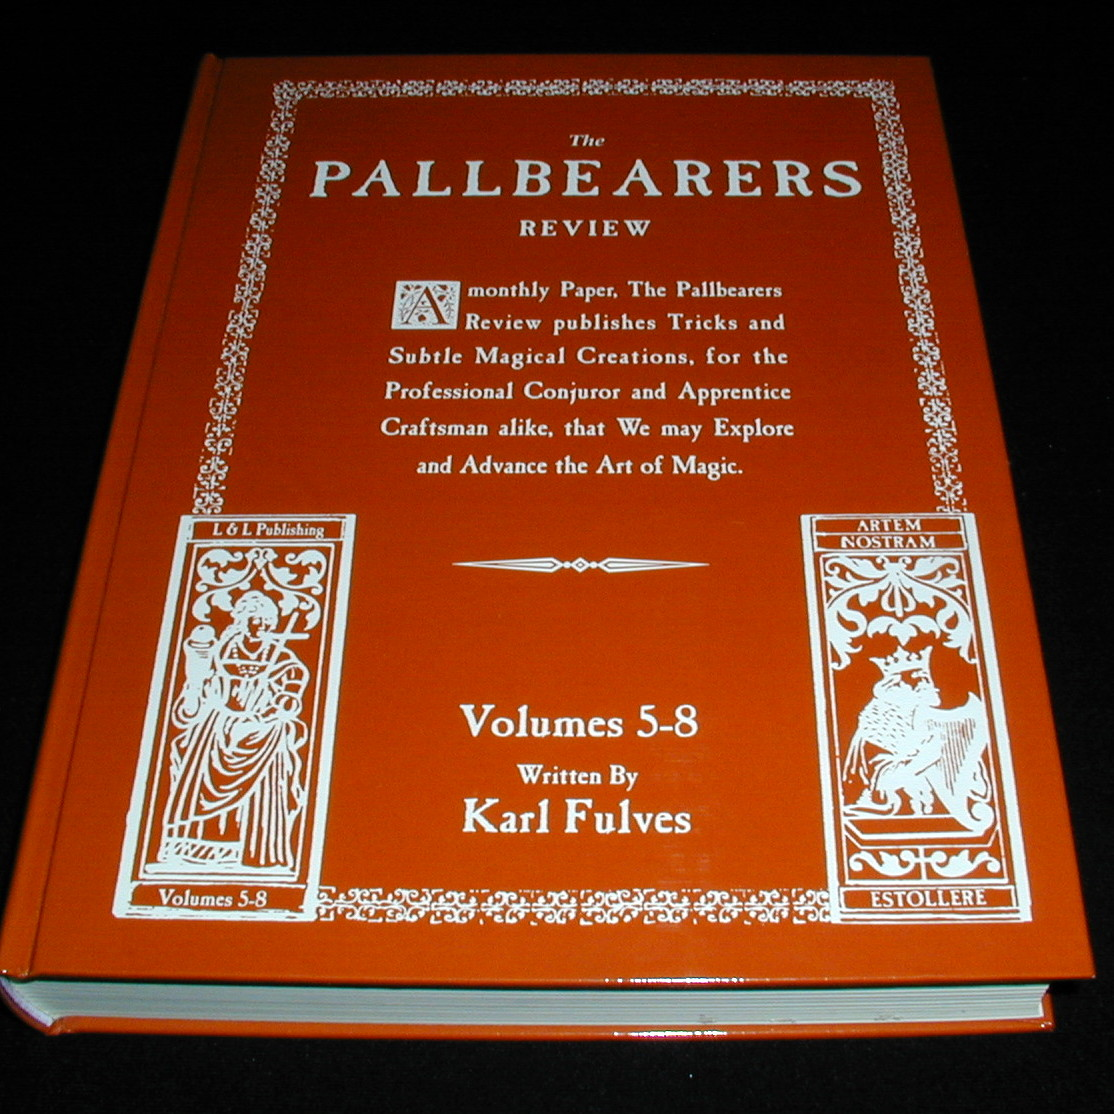 Karl Fulves - Pallbearers Review vols 5-8